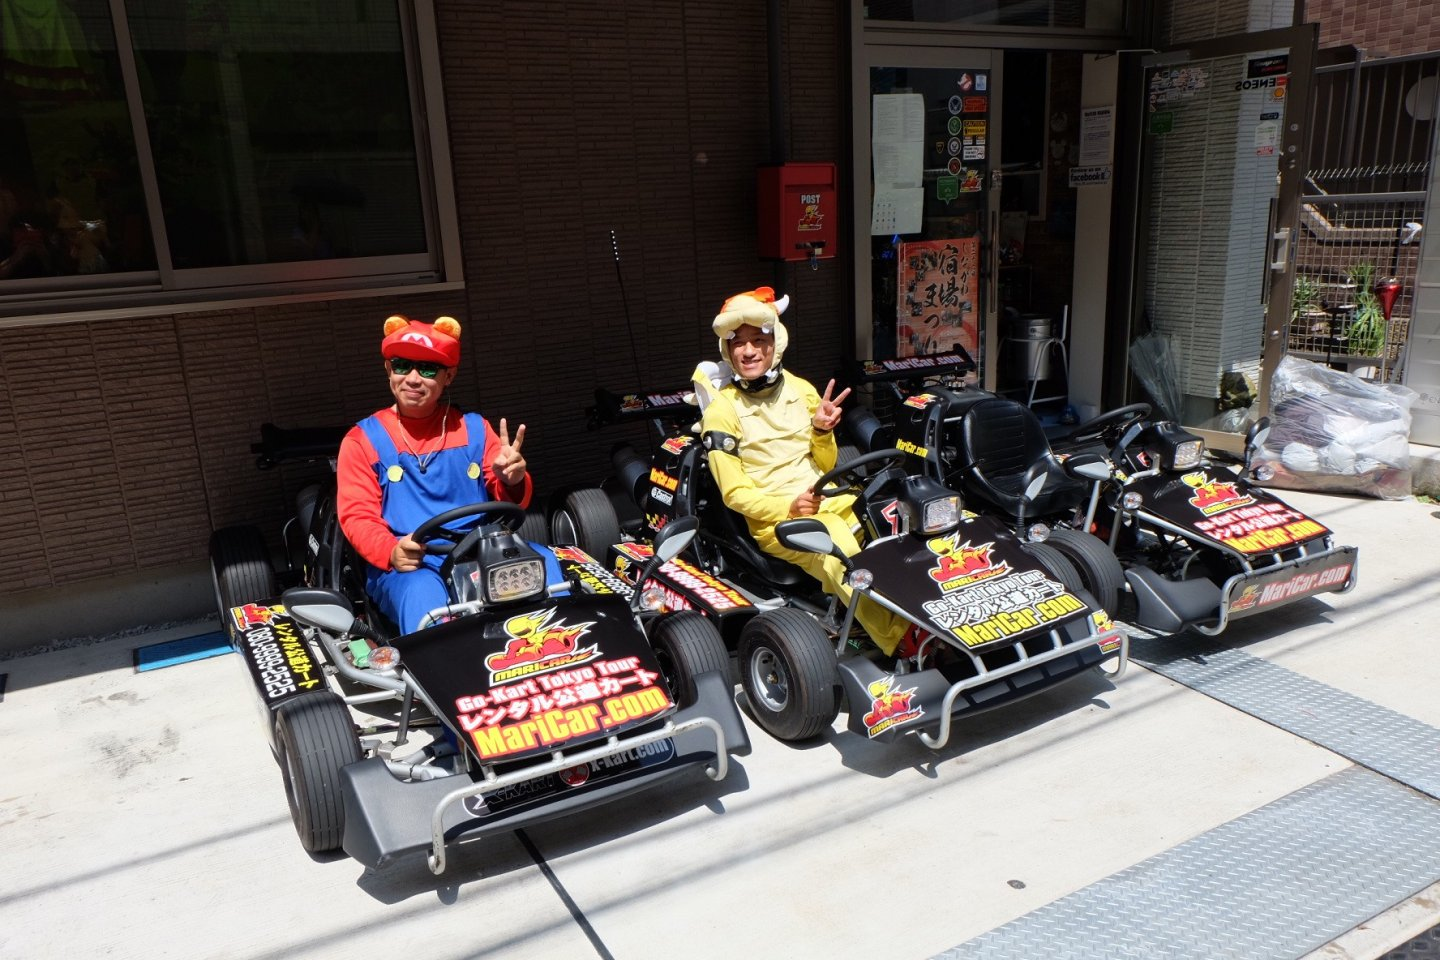 Rent your go-kart with your costume and drive on the street.